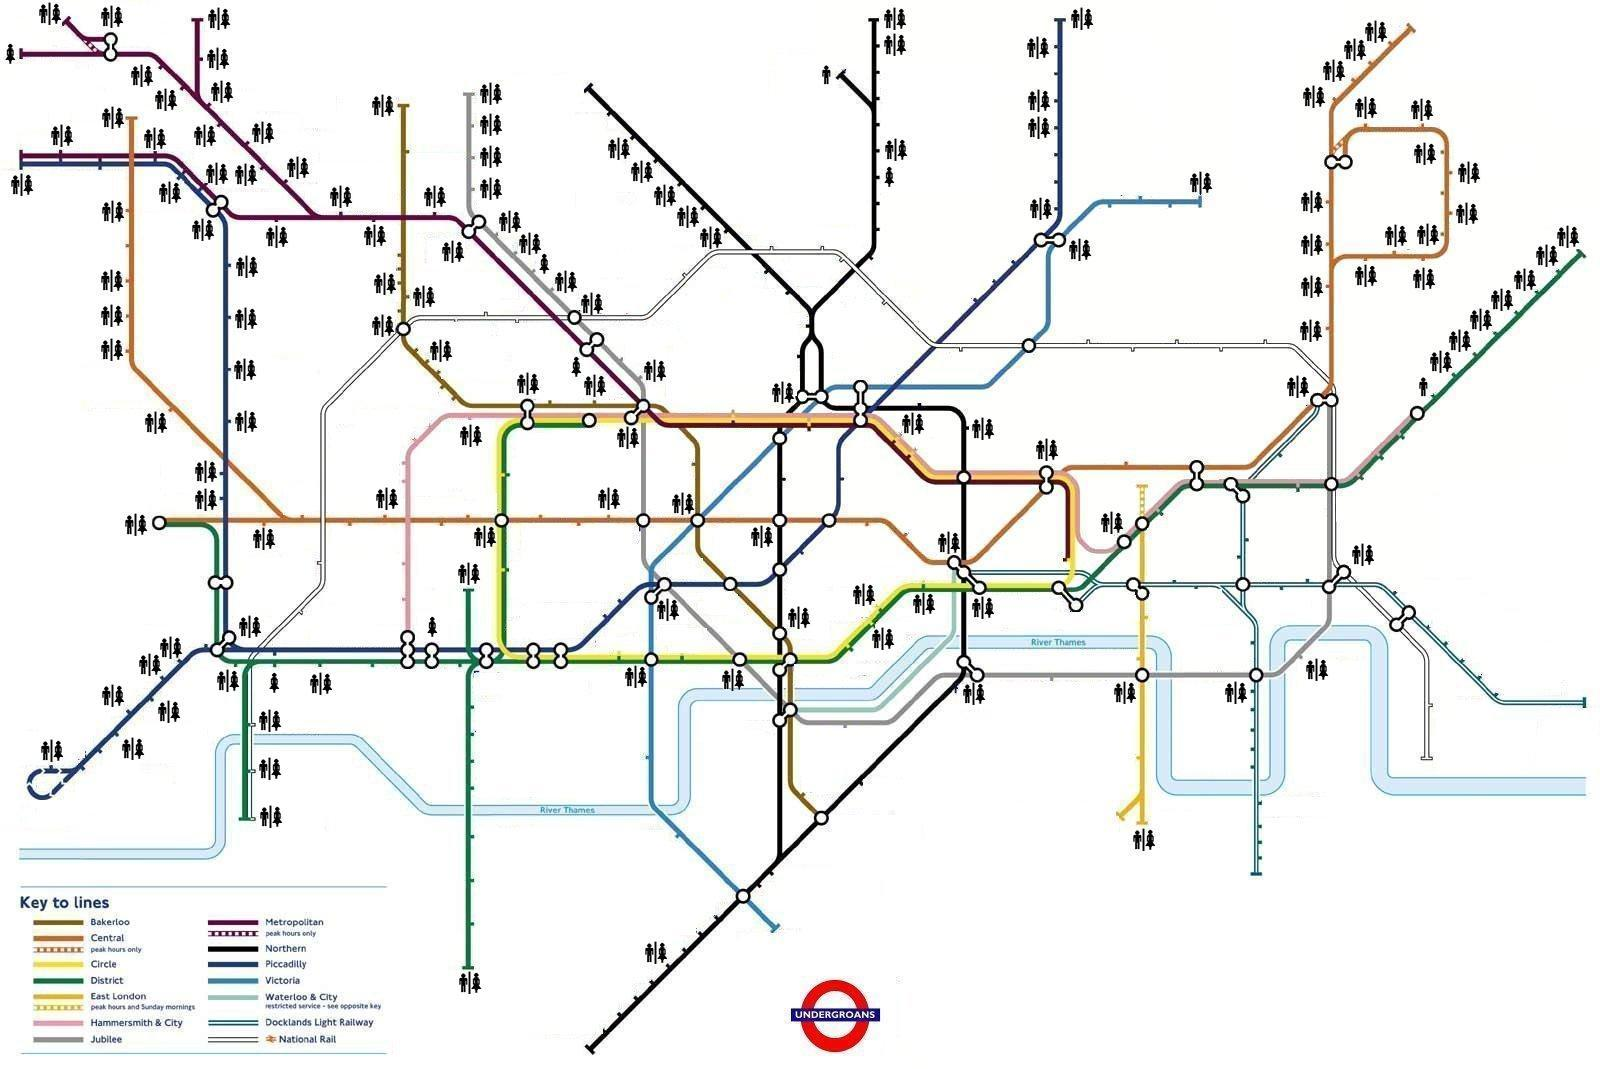 Tube Toilet Map Quirky Tube Maps | Insider London